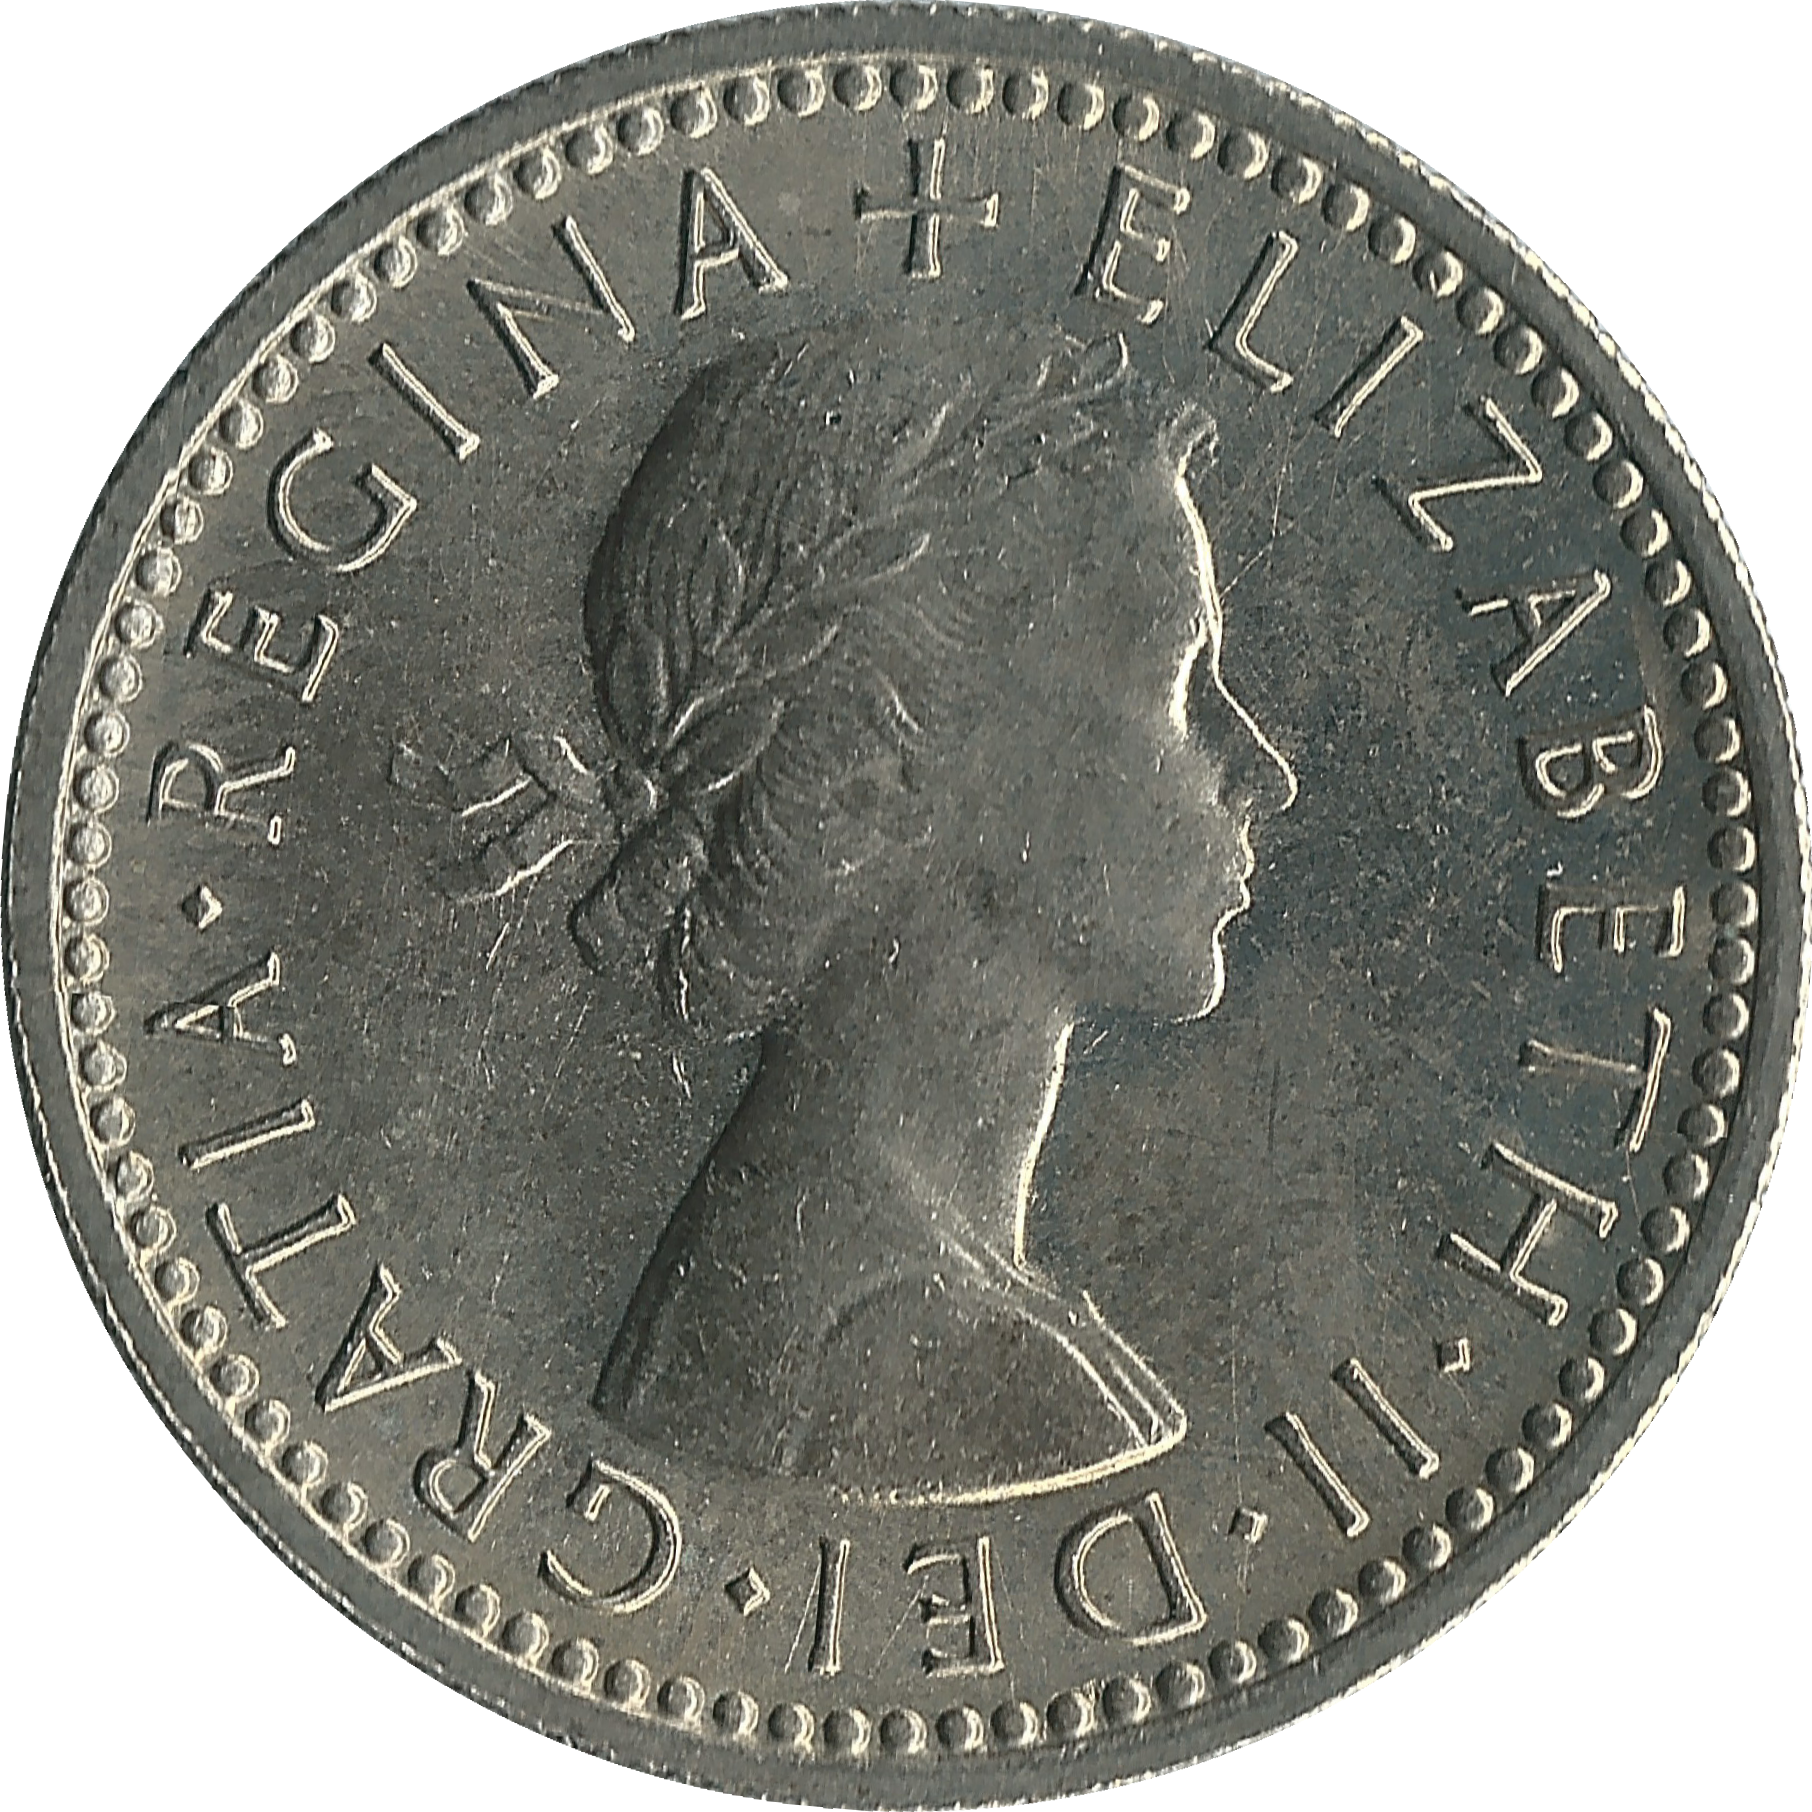 Sixpence British Coin Wikipedia